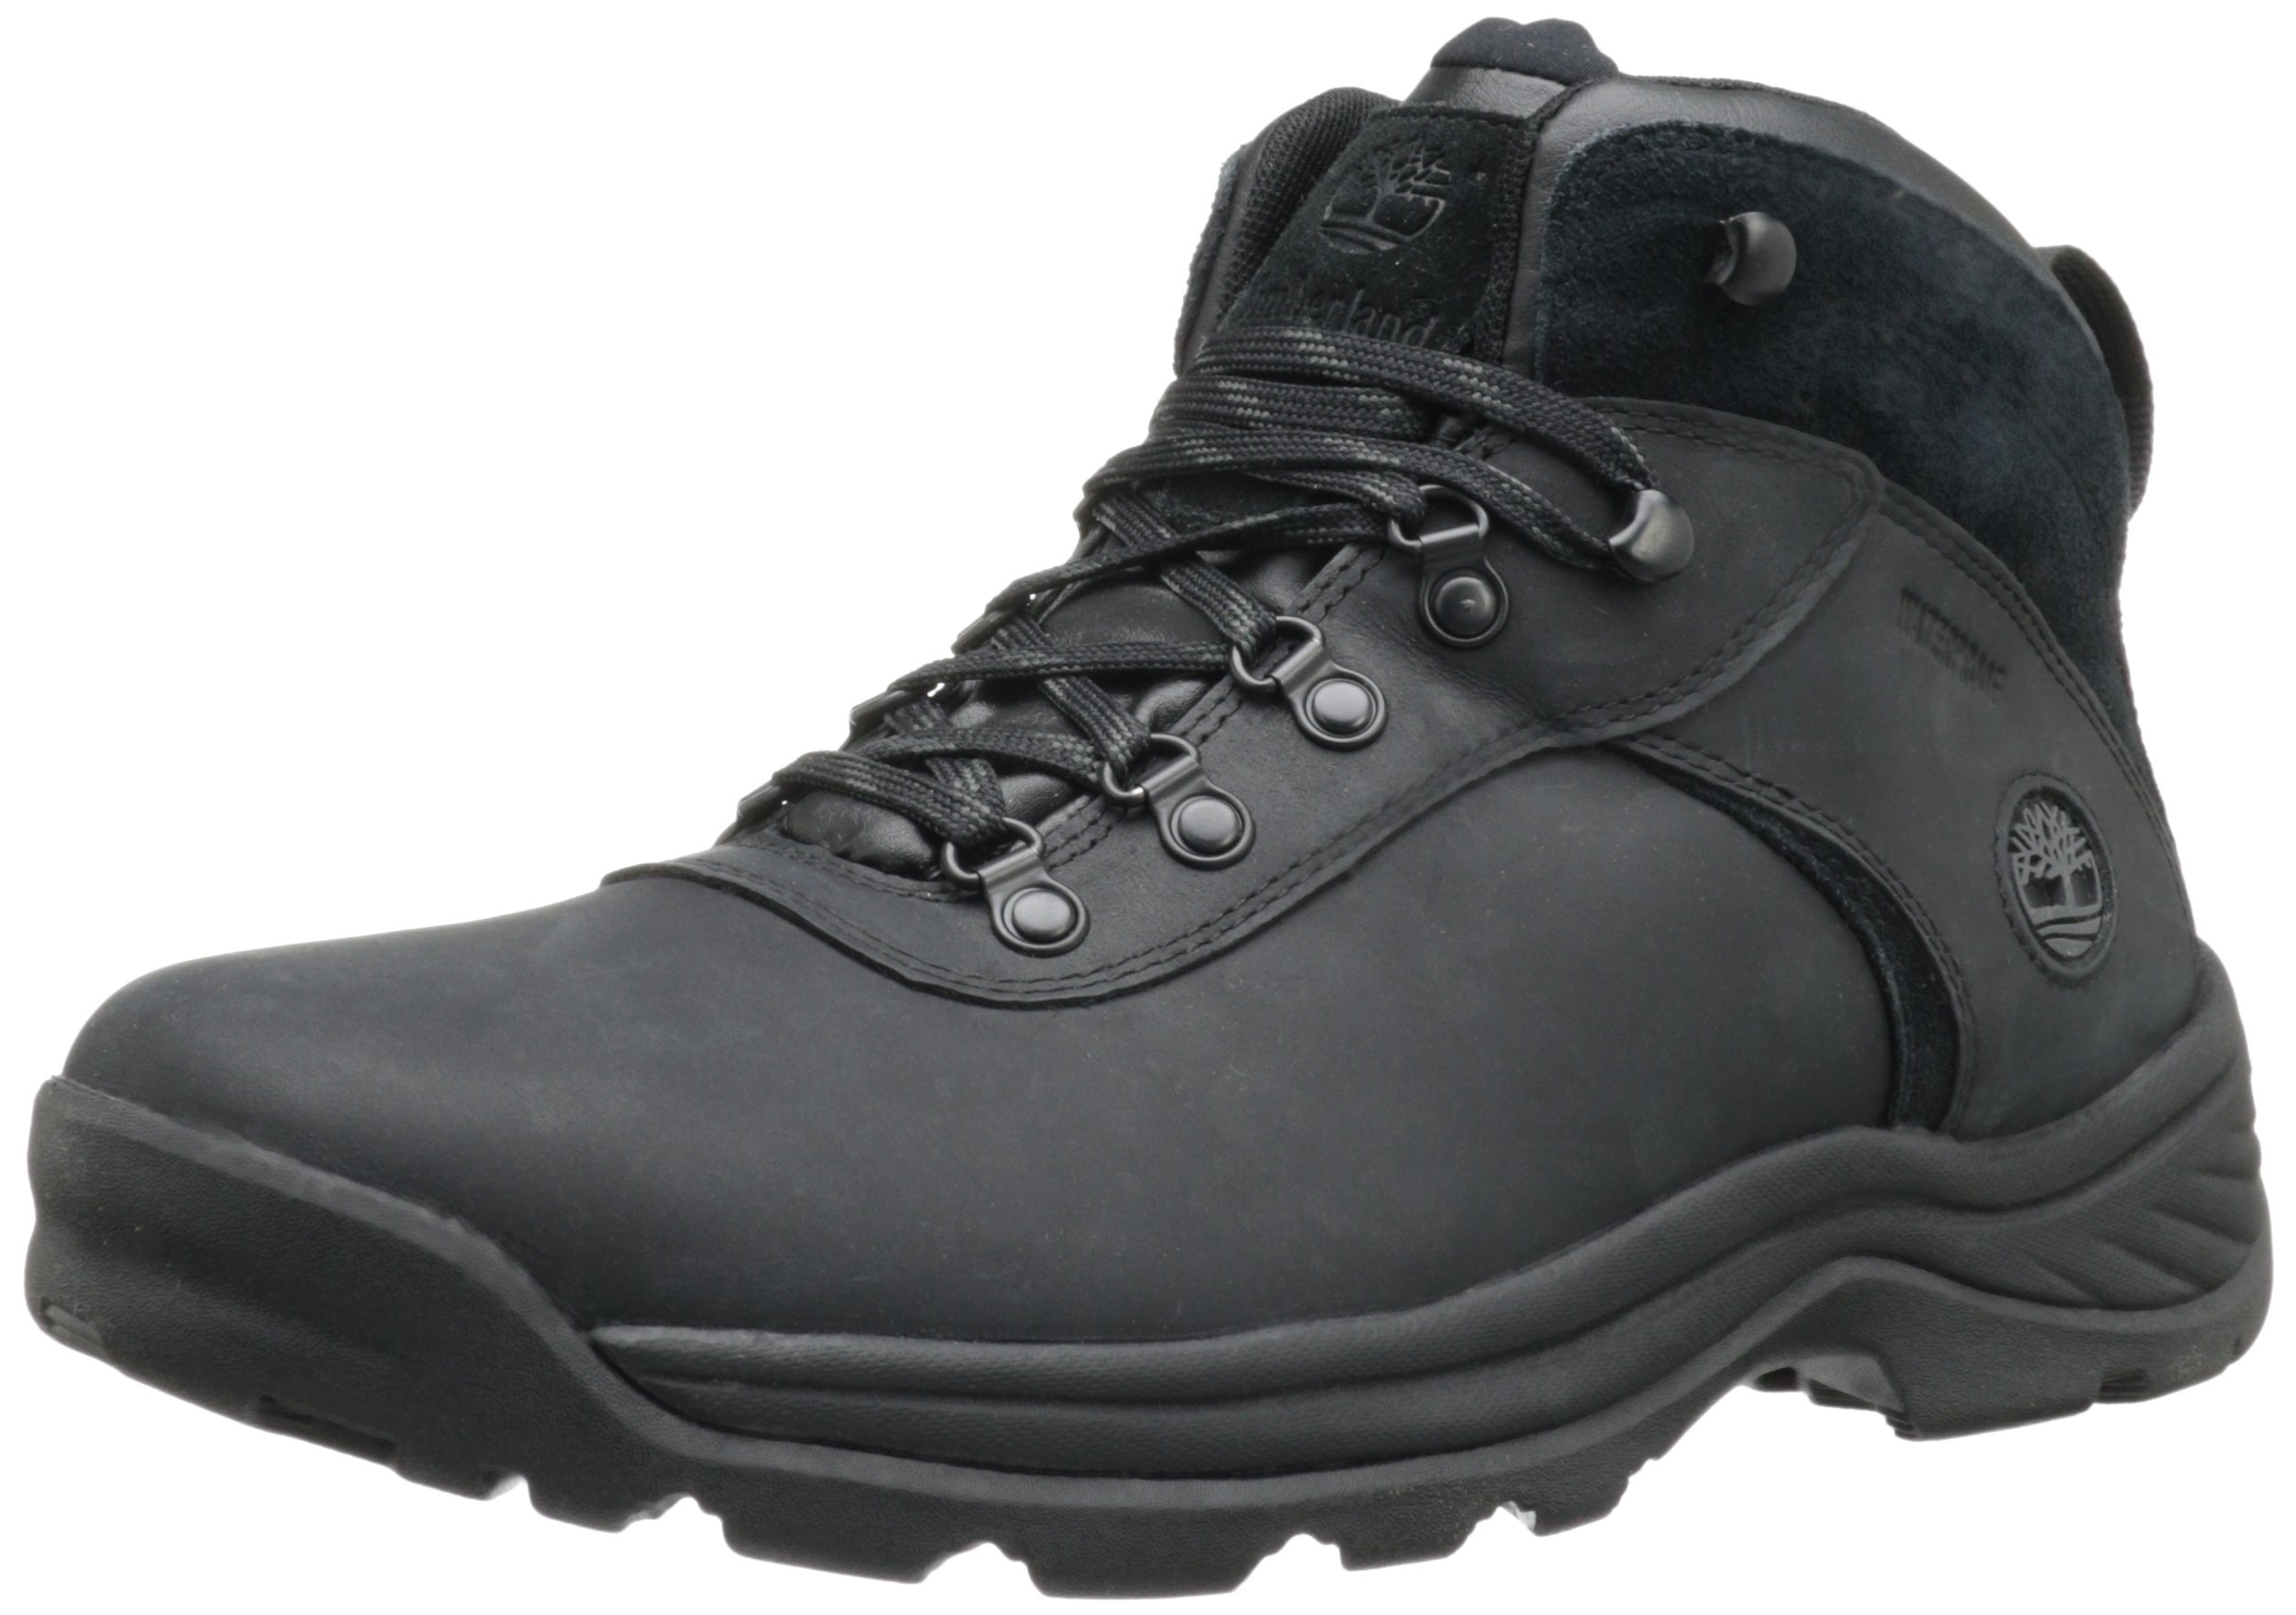 Timberland Men's Flume Waterproof Boot,Black,10 W US